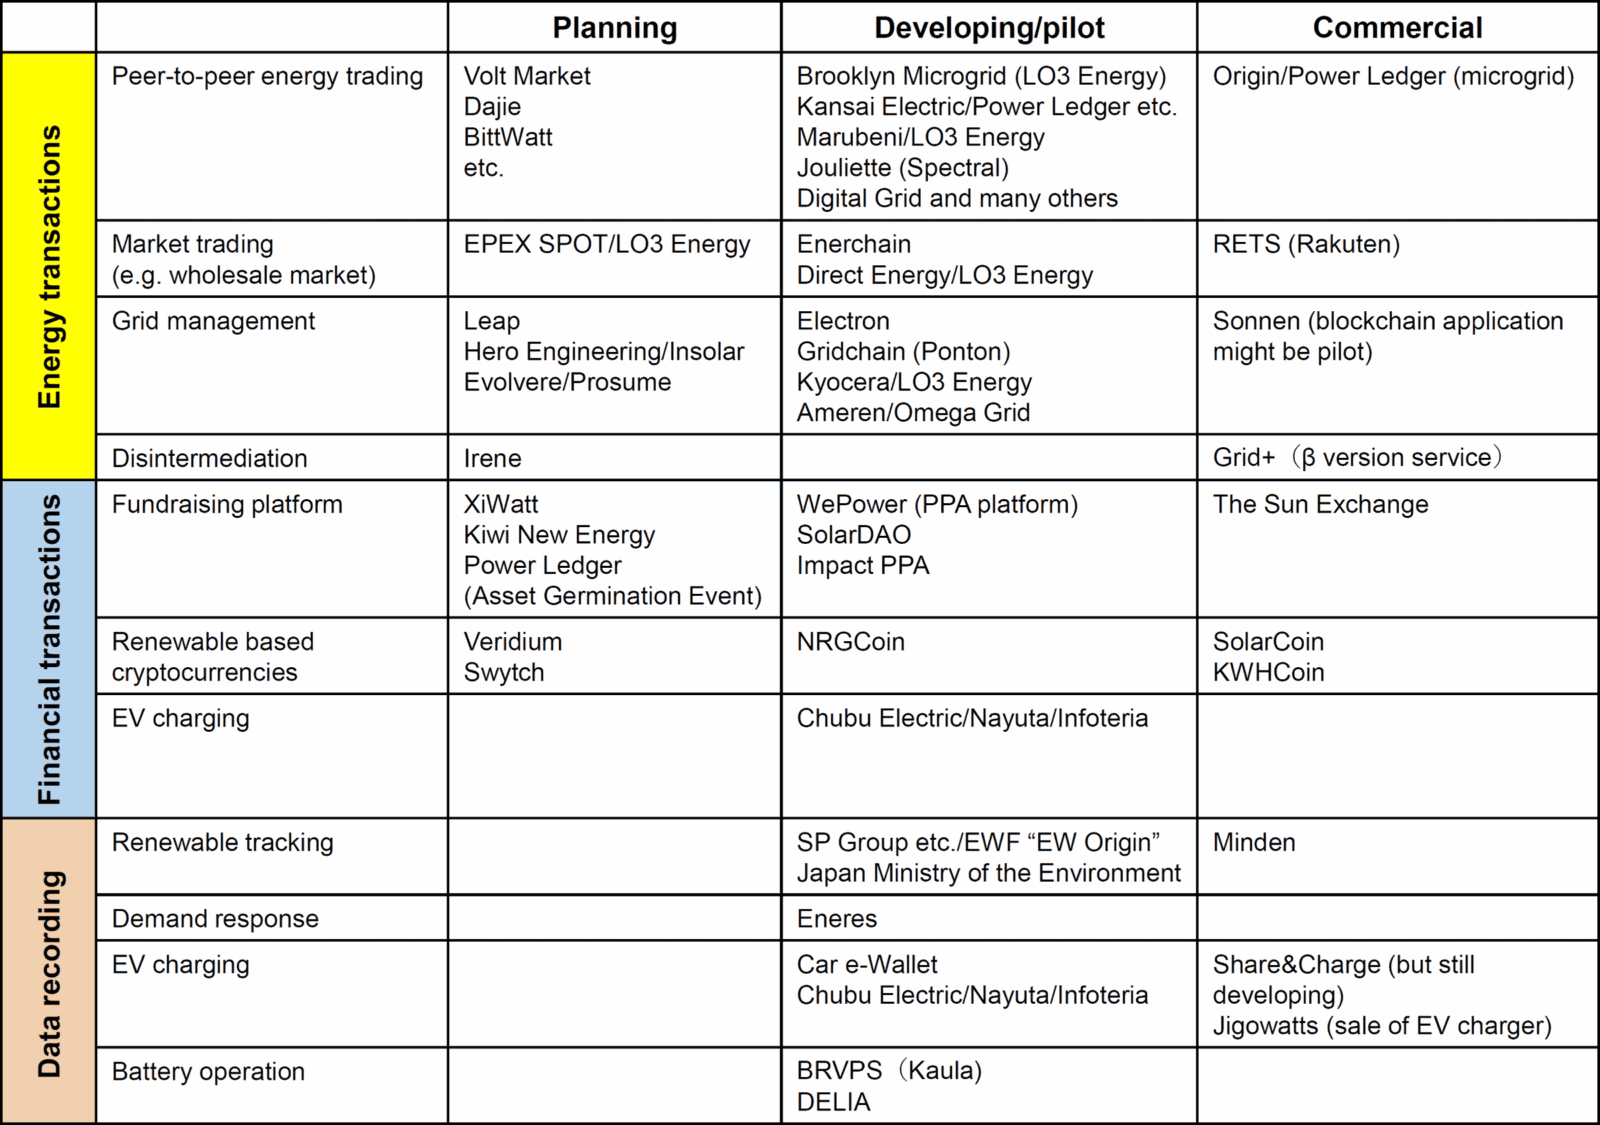 Figure 2: Energy blockchain cases categorized in different staged (source: created by author, contribution to IEEE P2418.5 Working Group on energy blockchain standardization)